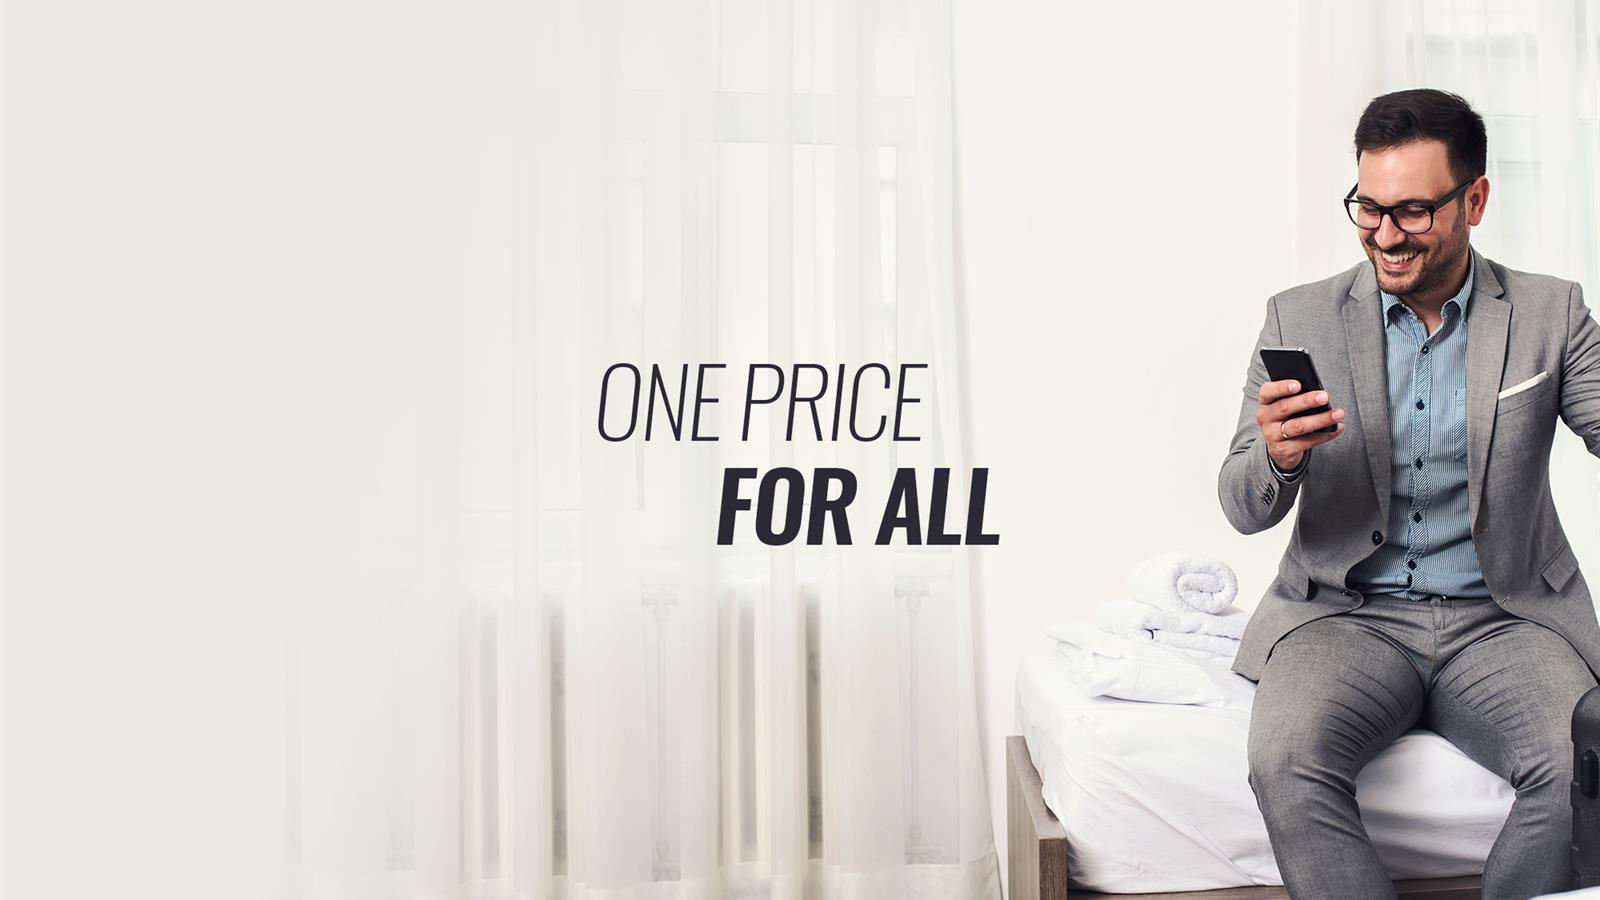 ONE PRICE FOR ALL